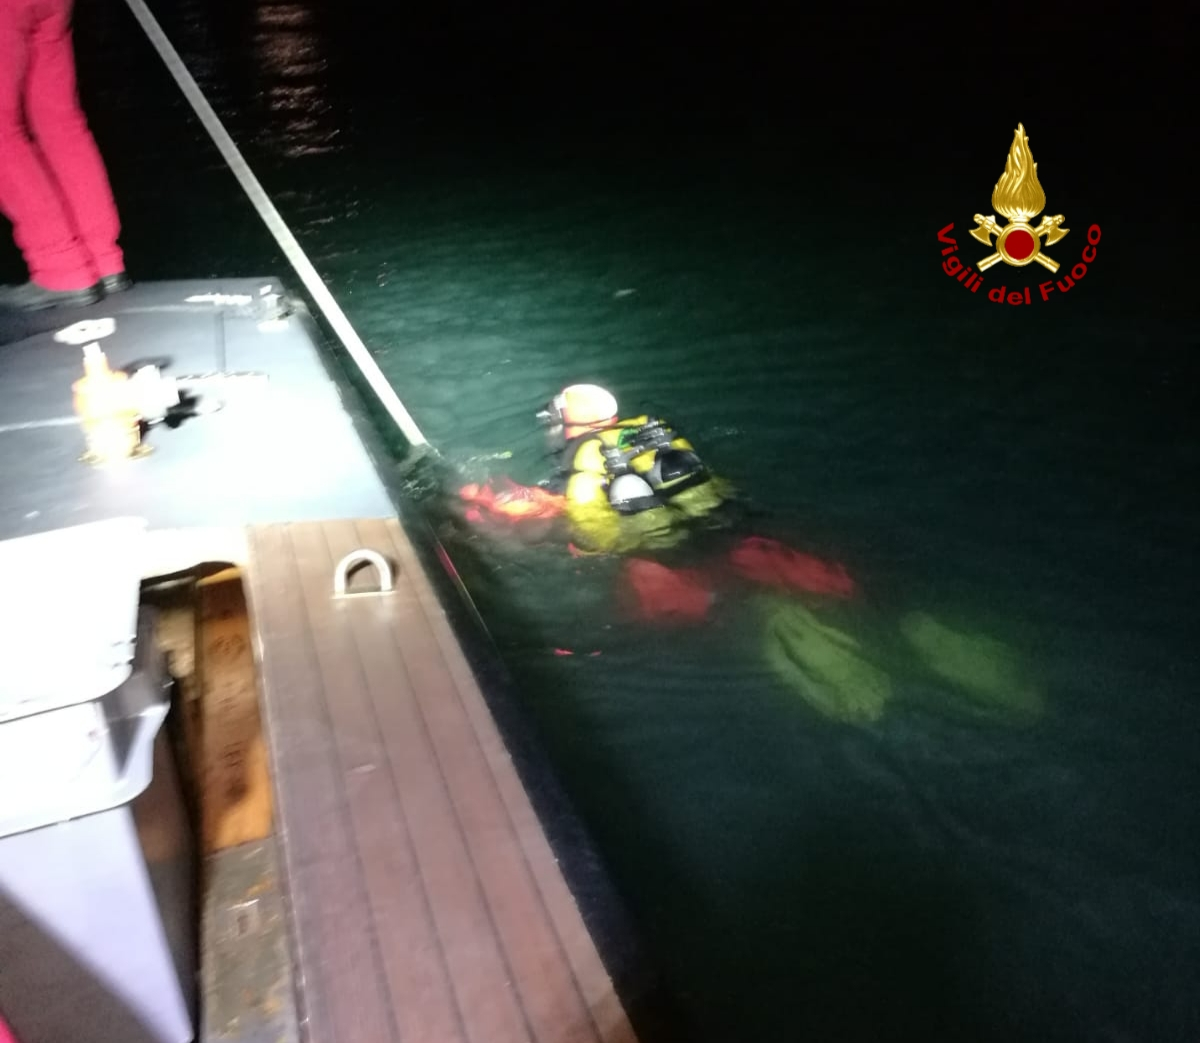 Grave incidente nautico in laguna: 3 morti e un ferito